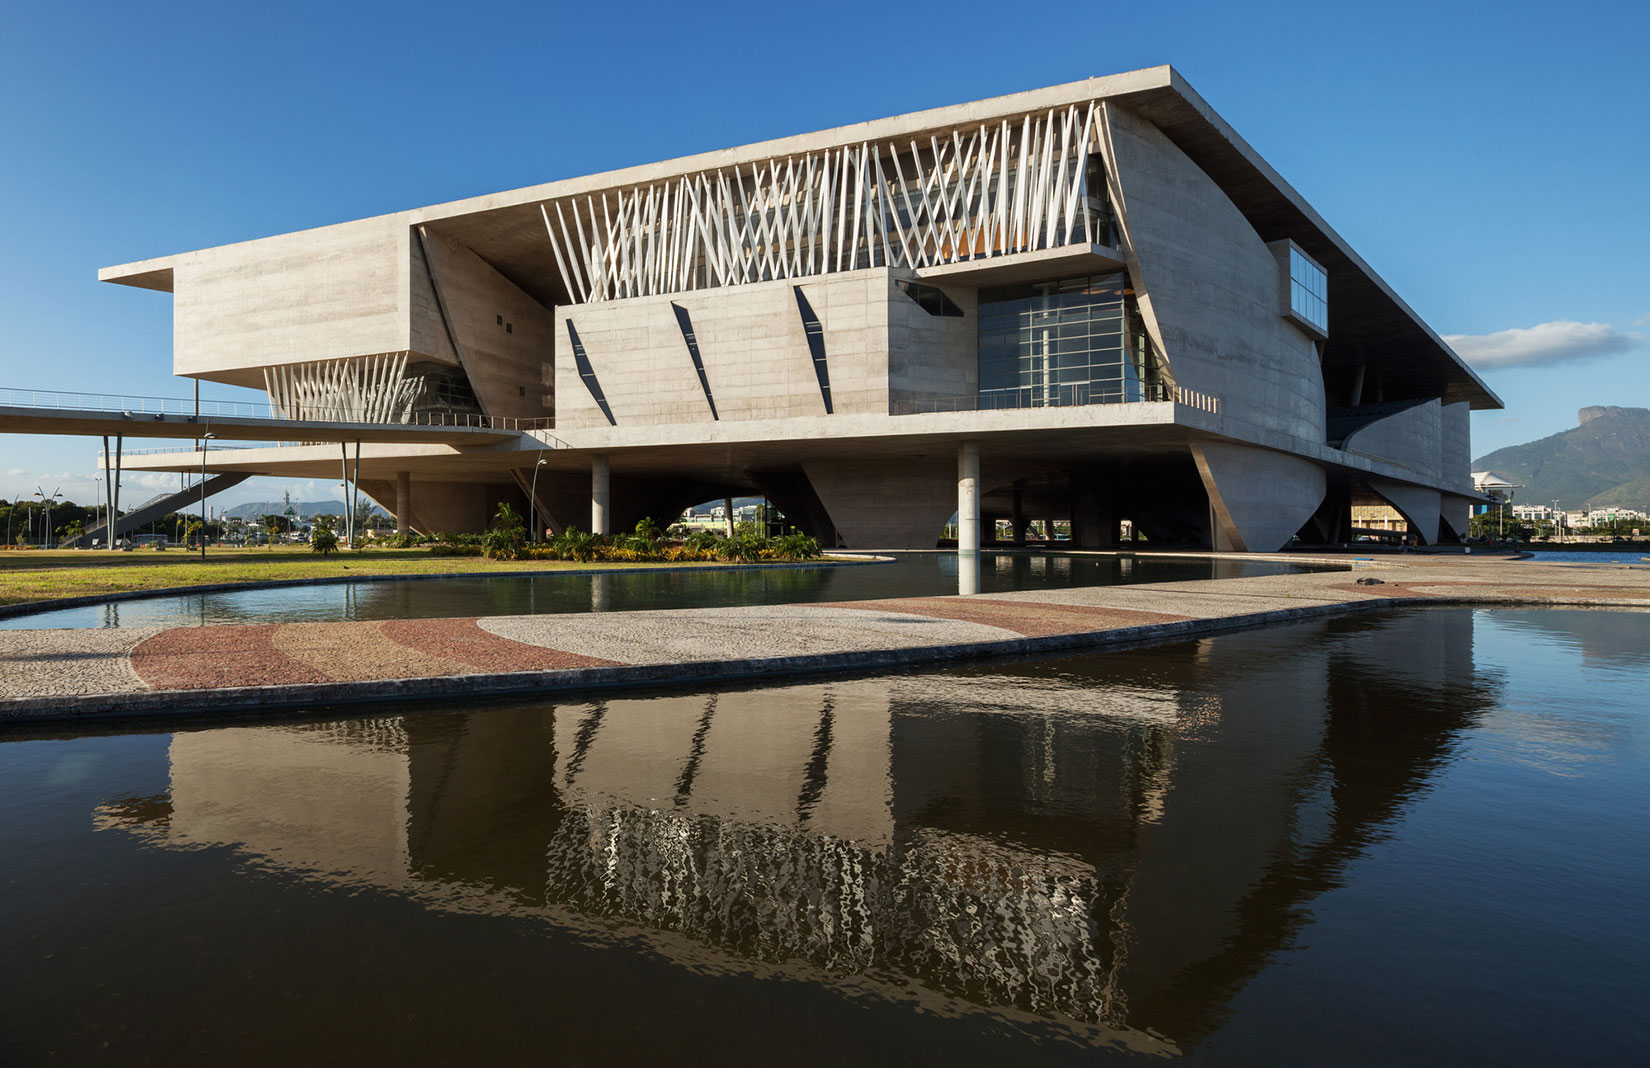 Japan's hospitality house at the Rio Olympic Games